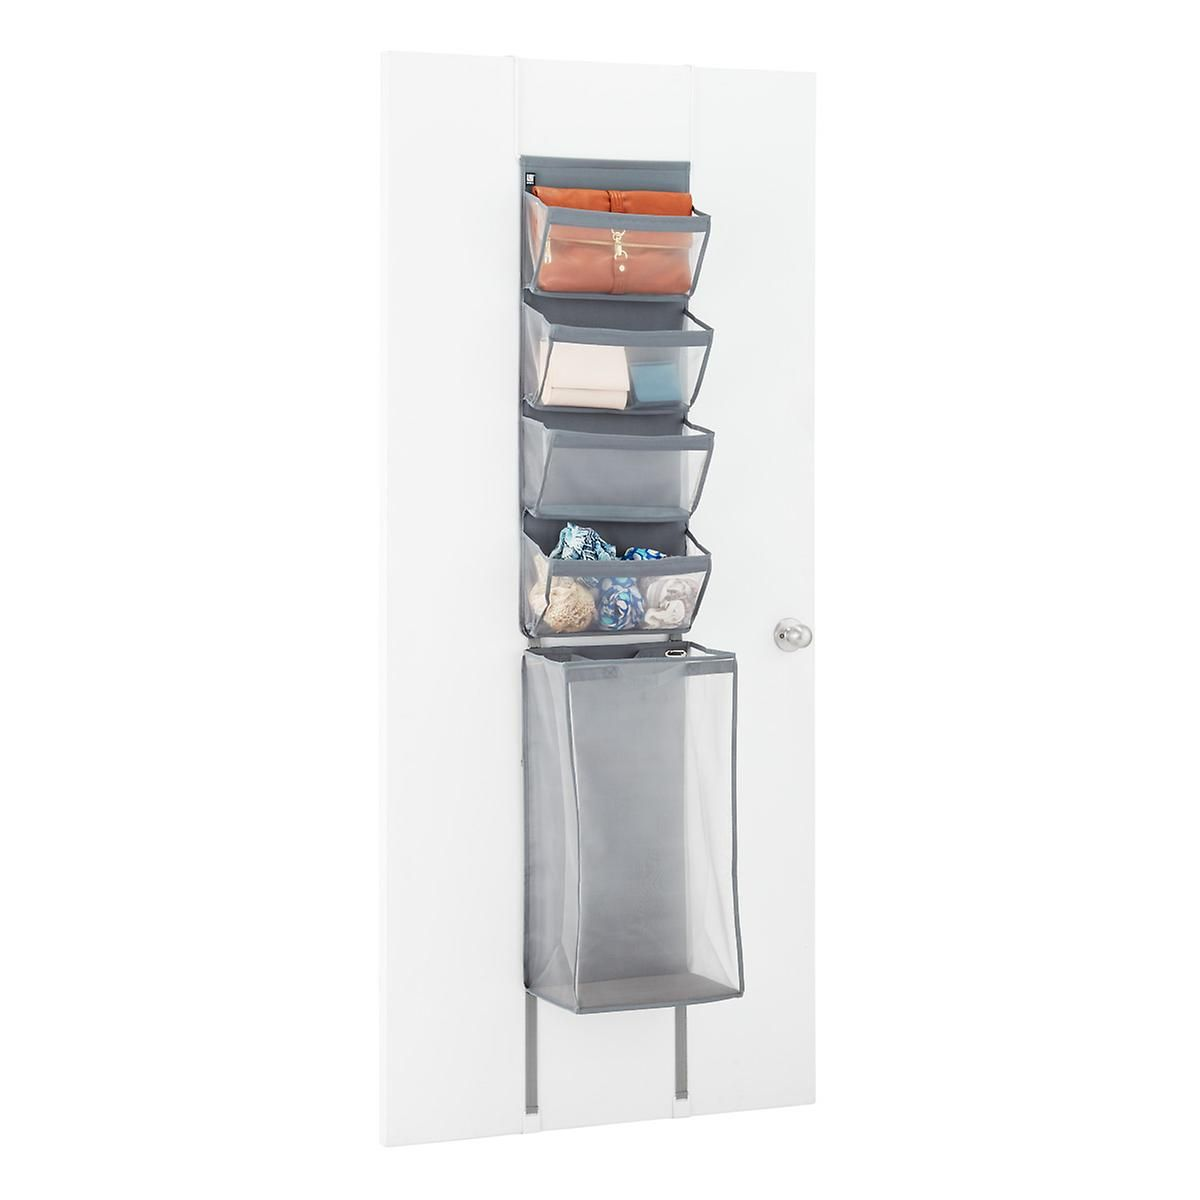 Our Enfold Overdoor Organizer by Umbra gives you four gusseted ...